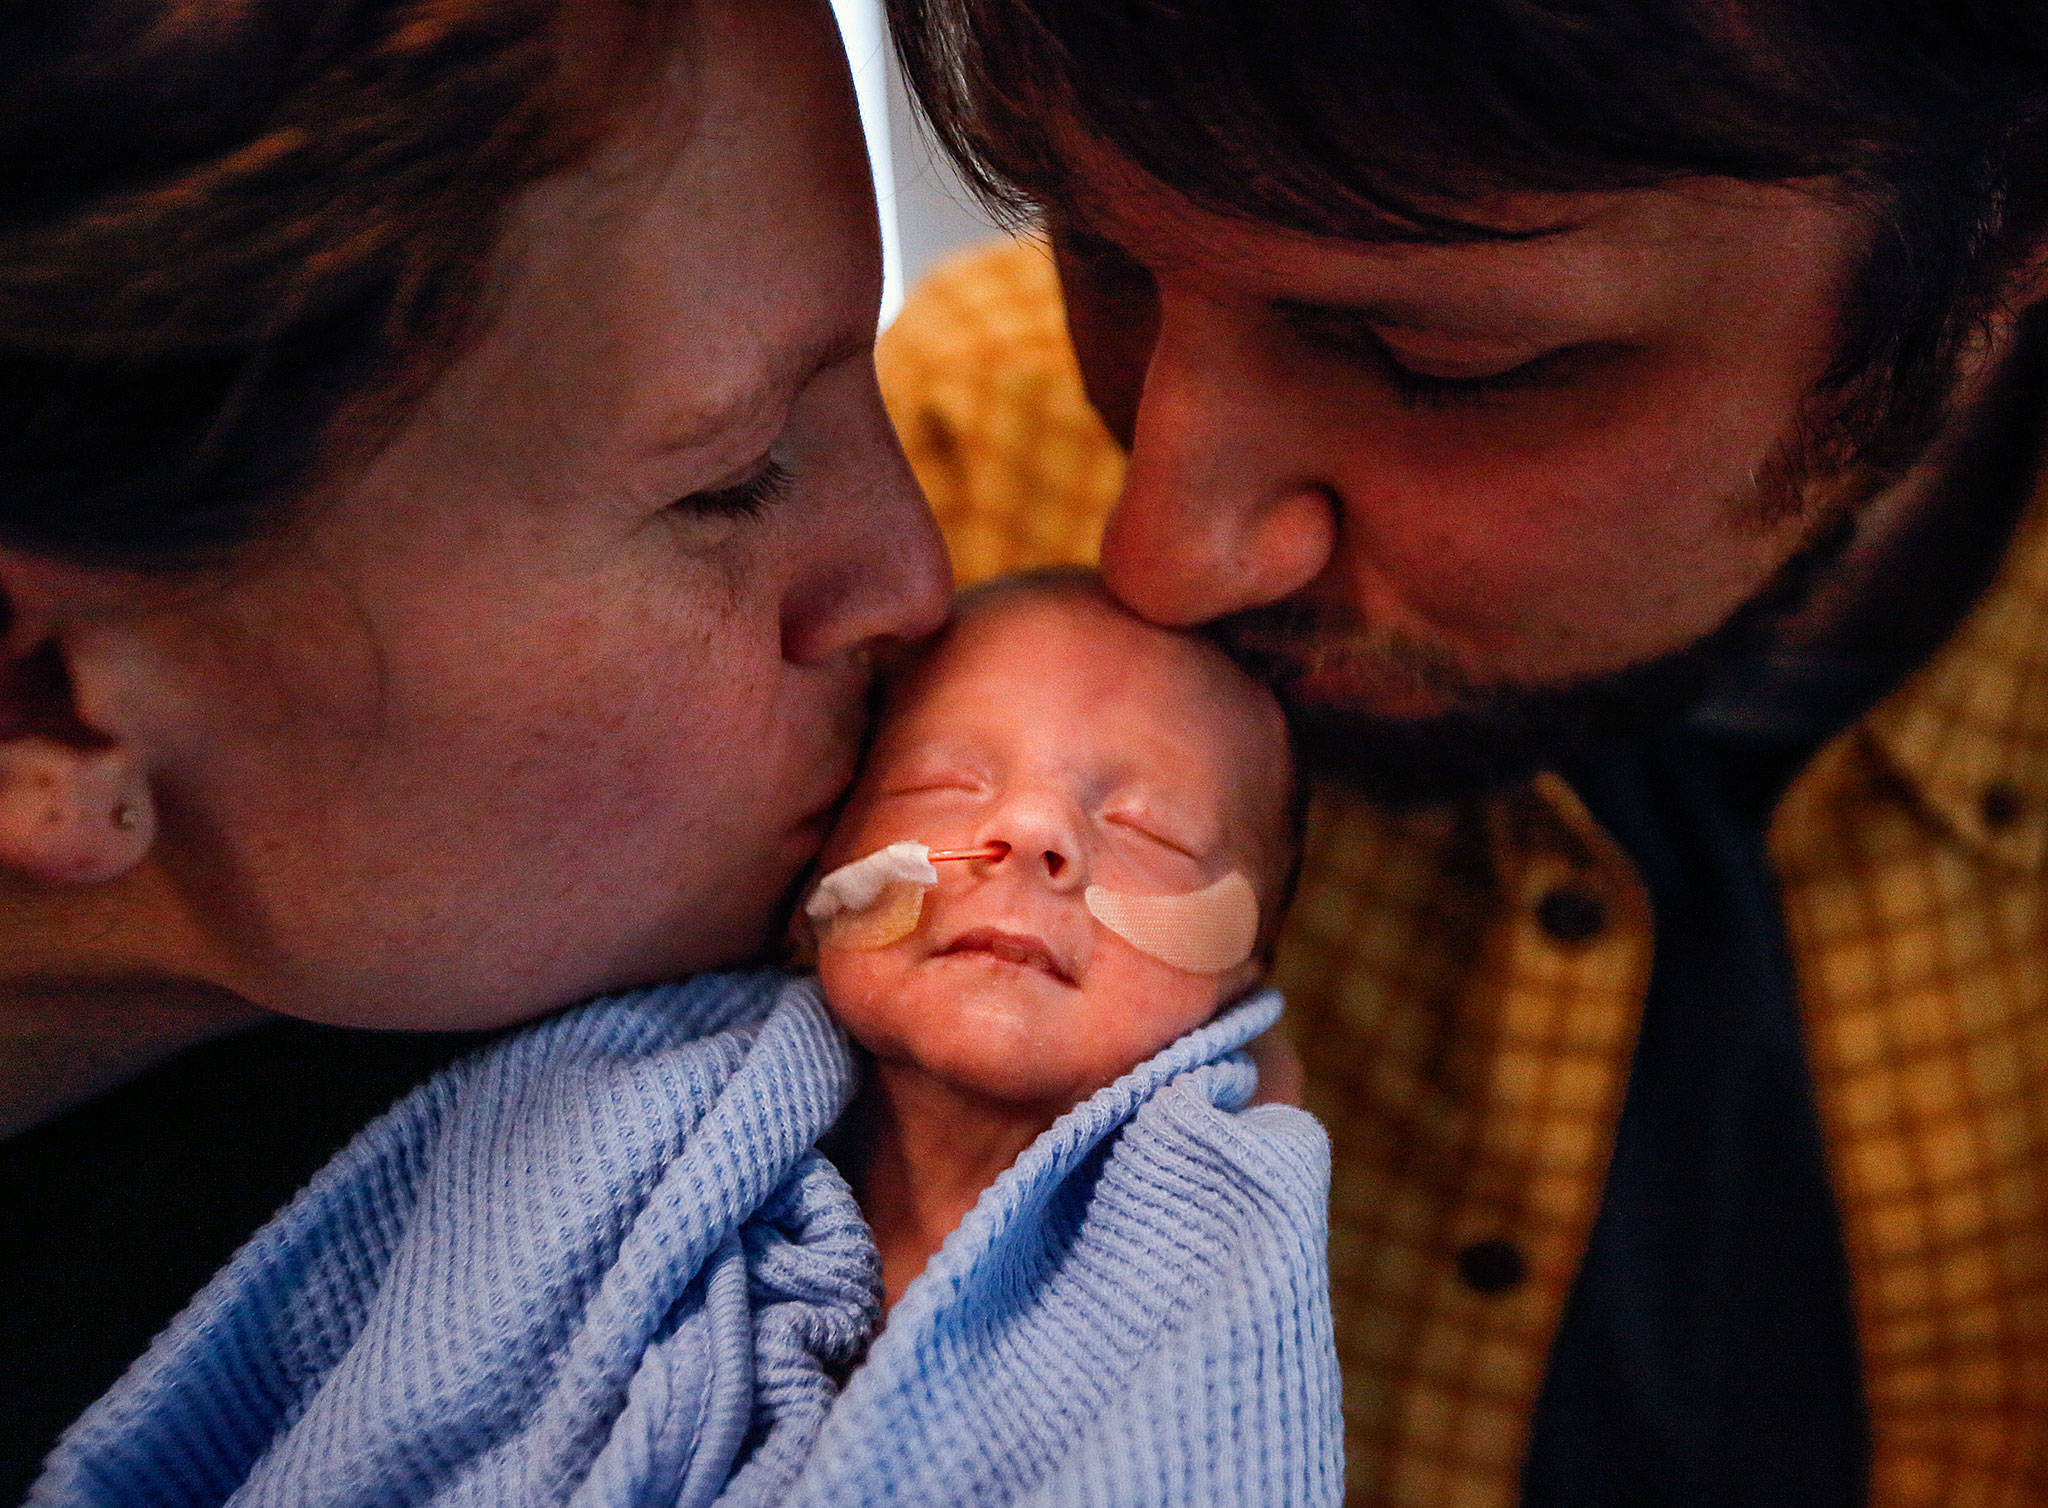 Elisabeth Strom and husband Steve Strom of Marysville kiss their son, Hugo, who was born on the way to the hospital Dec. 2, at 30 weeks. He weighed 3 pounds, 11.6 ounces. Hugo is in neonatal intensive care for several more weeks. (Dan Bates / The Herald)